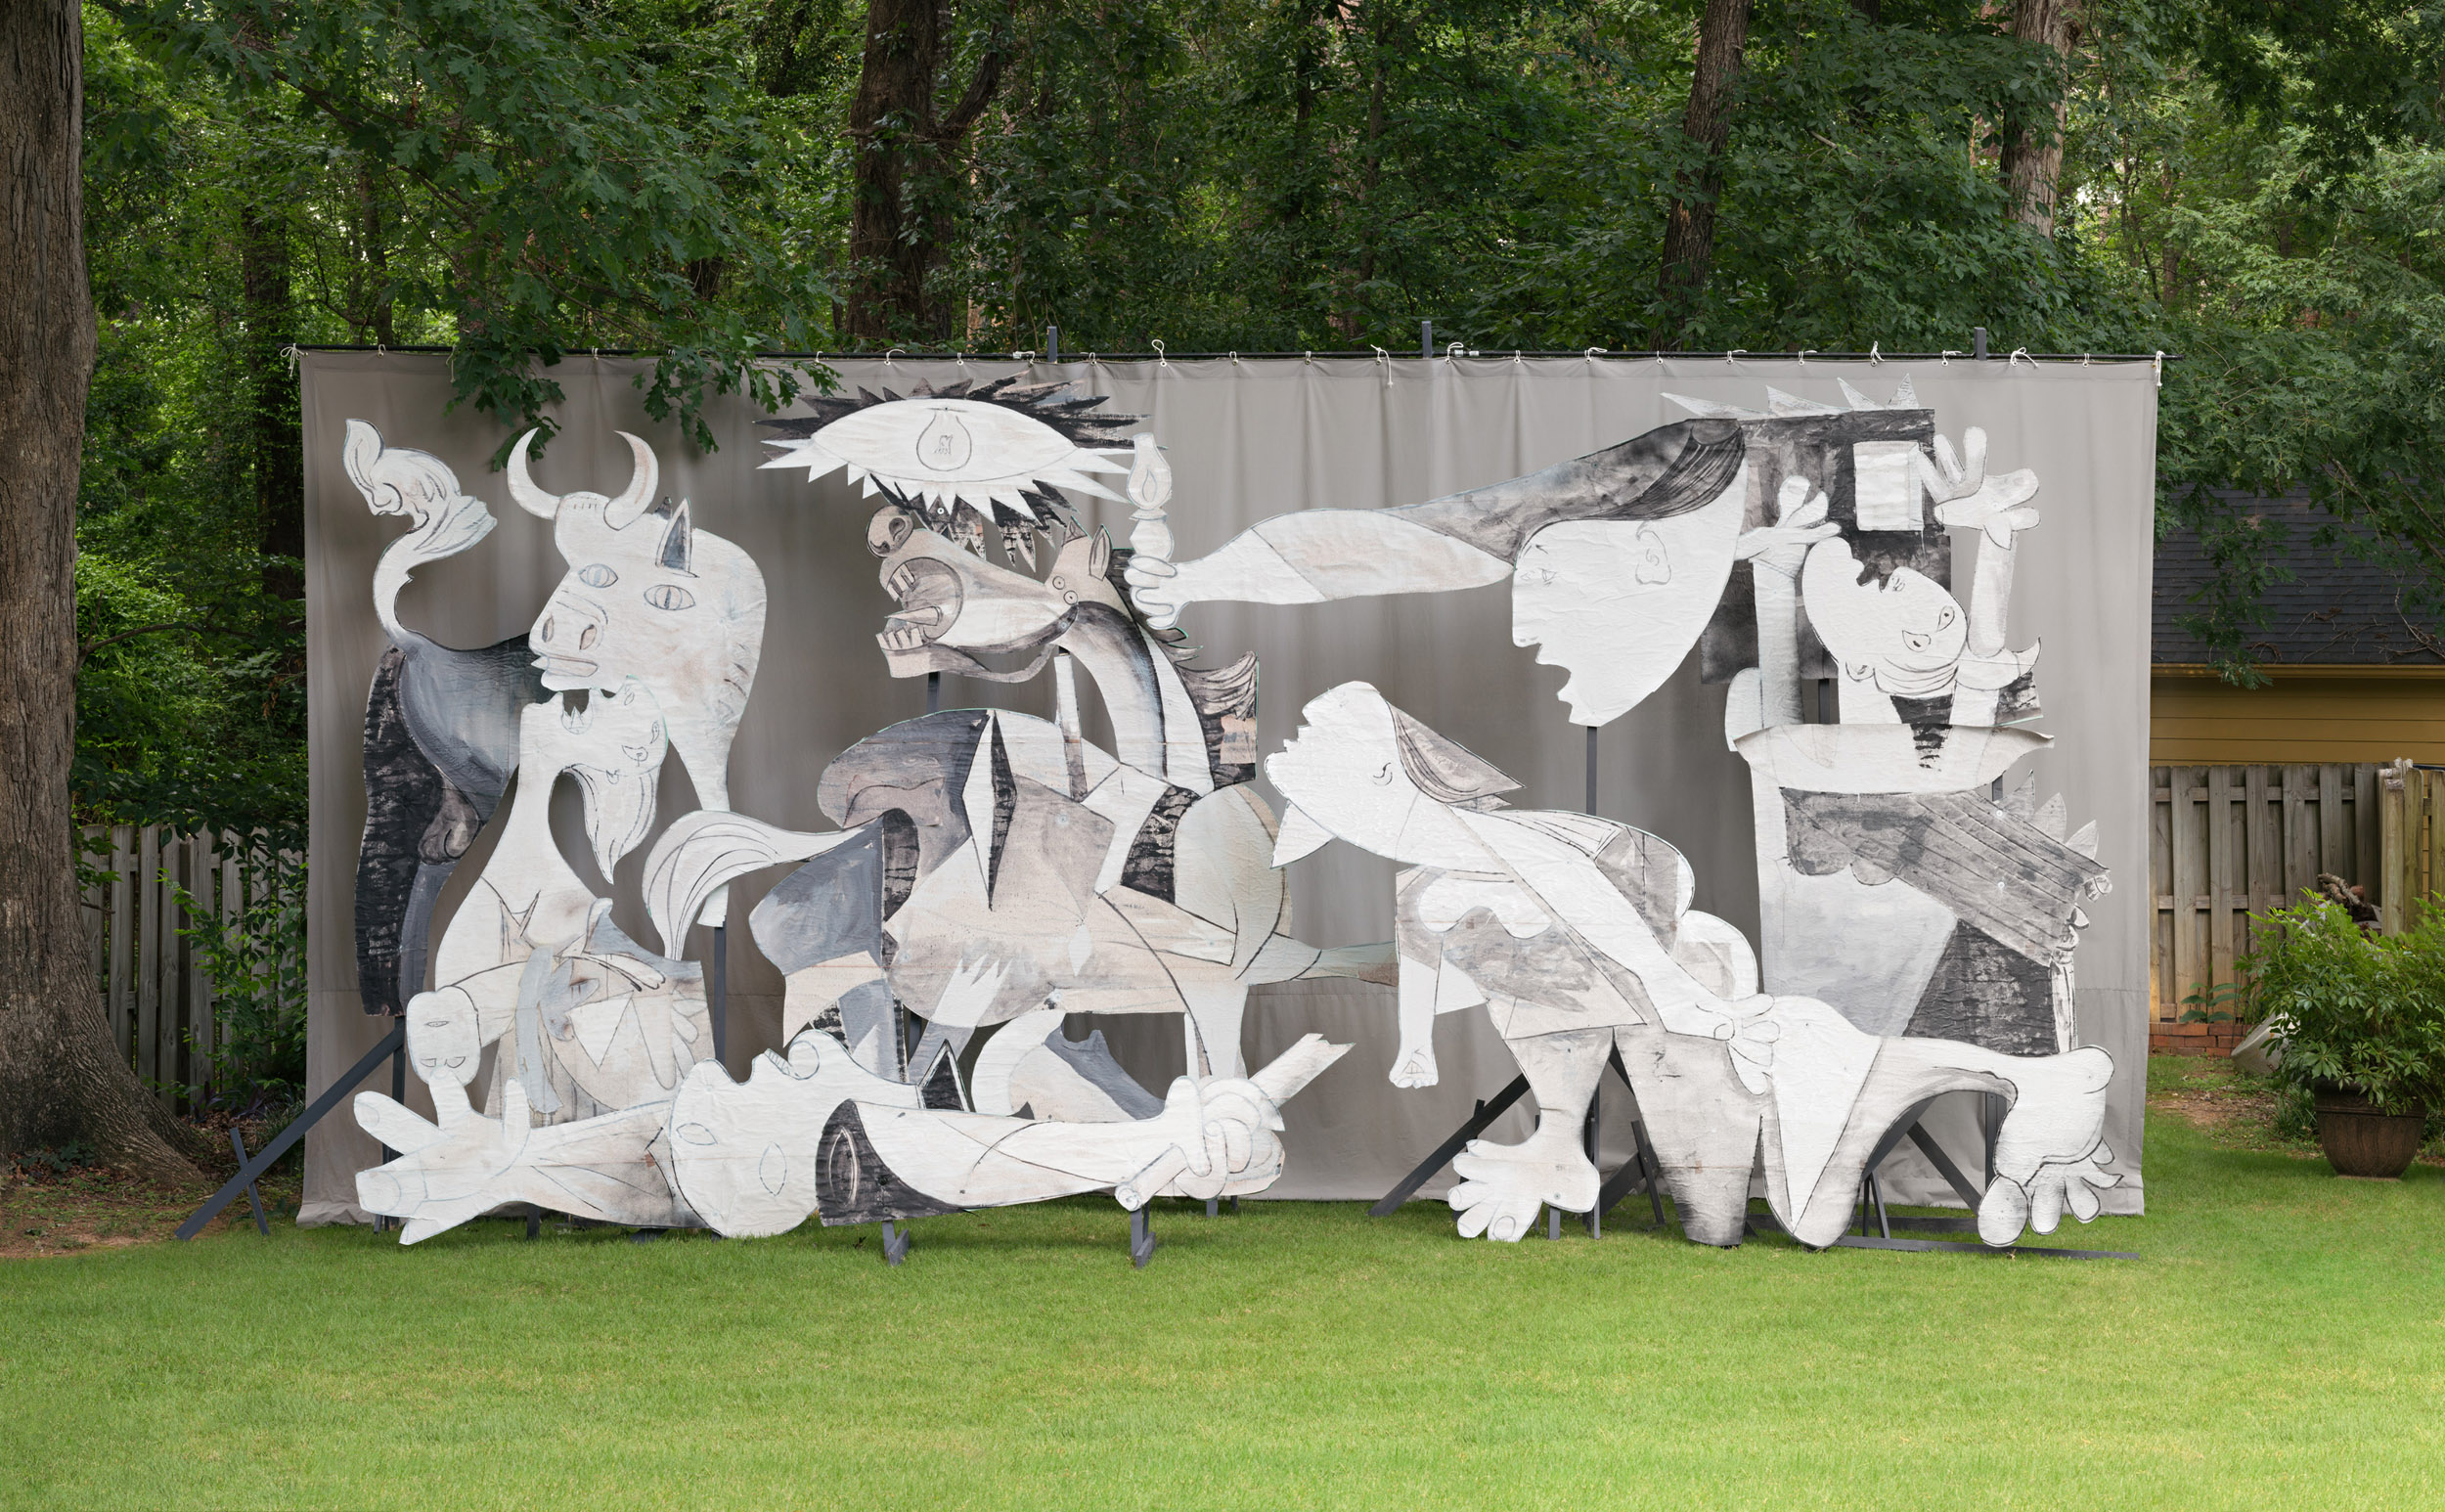 Backyard Guernica (Georgia) 1  2017, archival pigment print 86.5 x 140 cm / 34 x 55 in. Edition of 5 173 x 279 cm / 68 x 110 in. Edition of 2